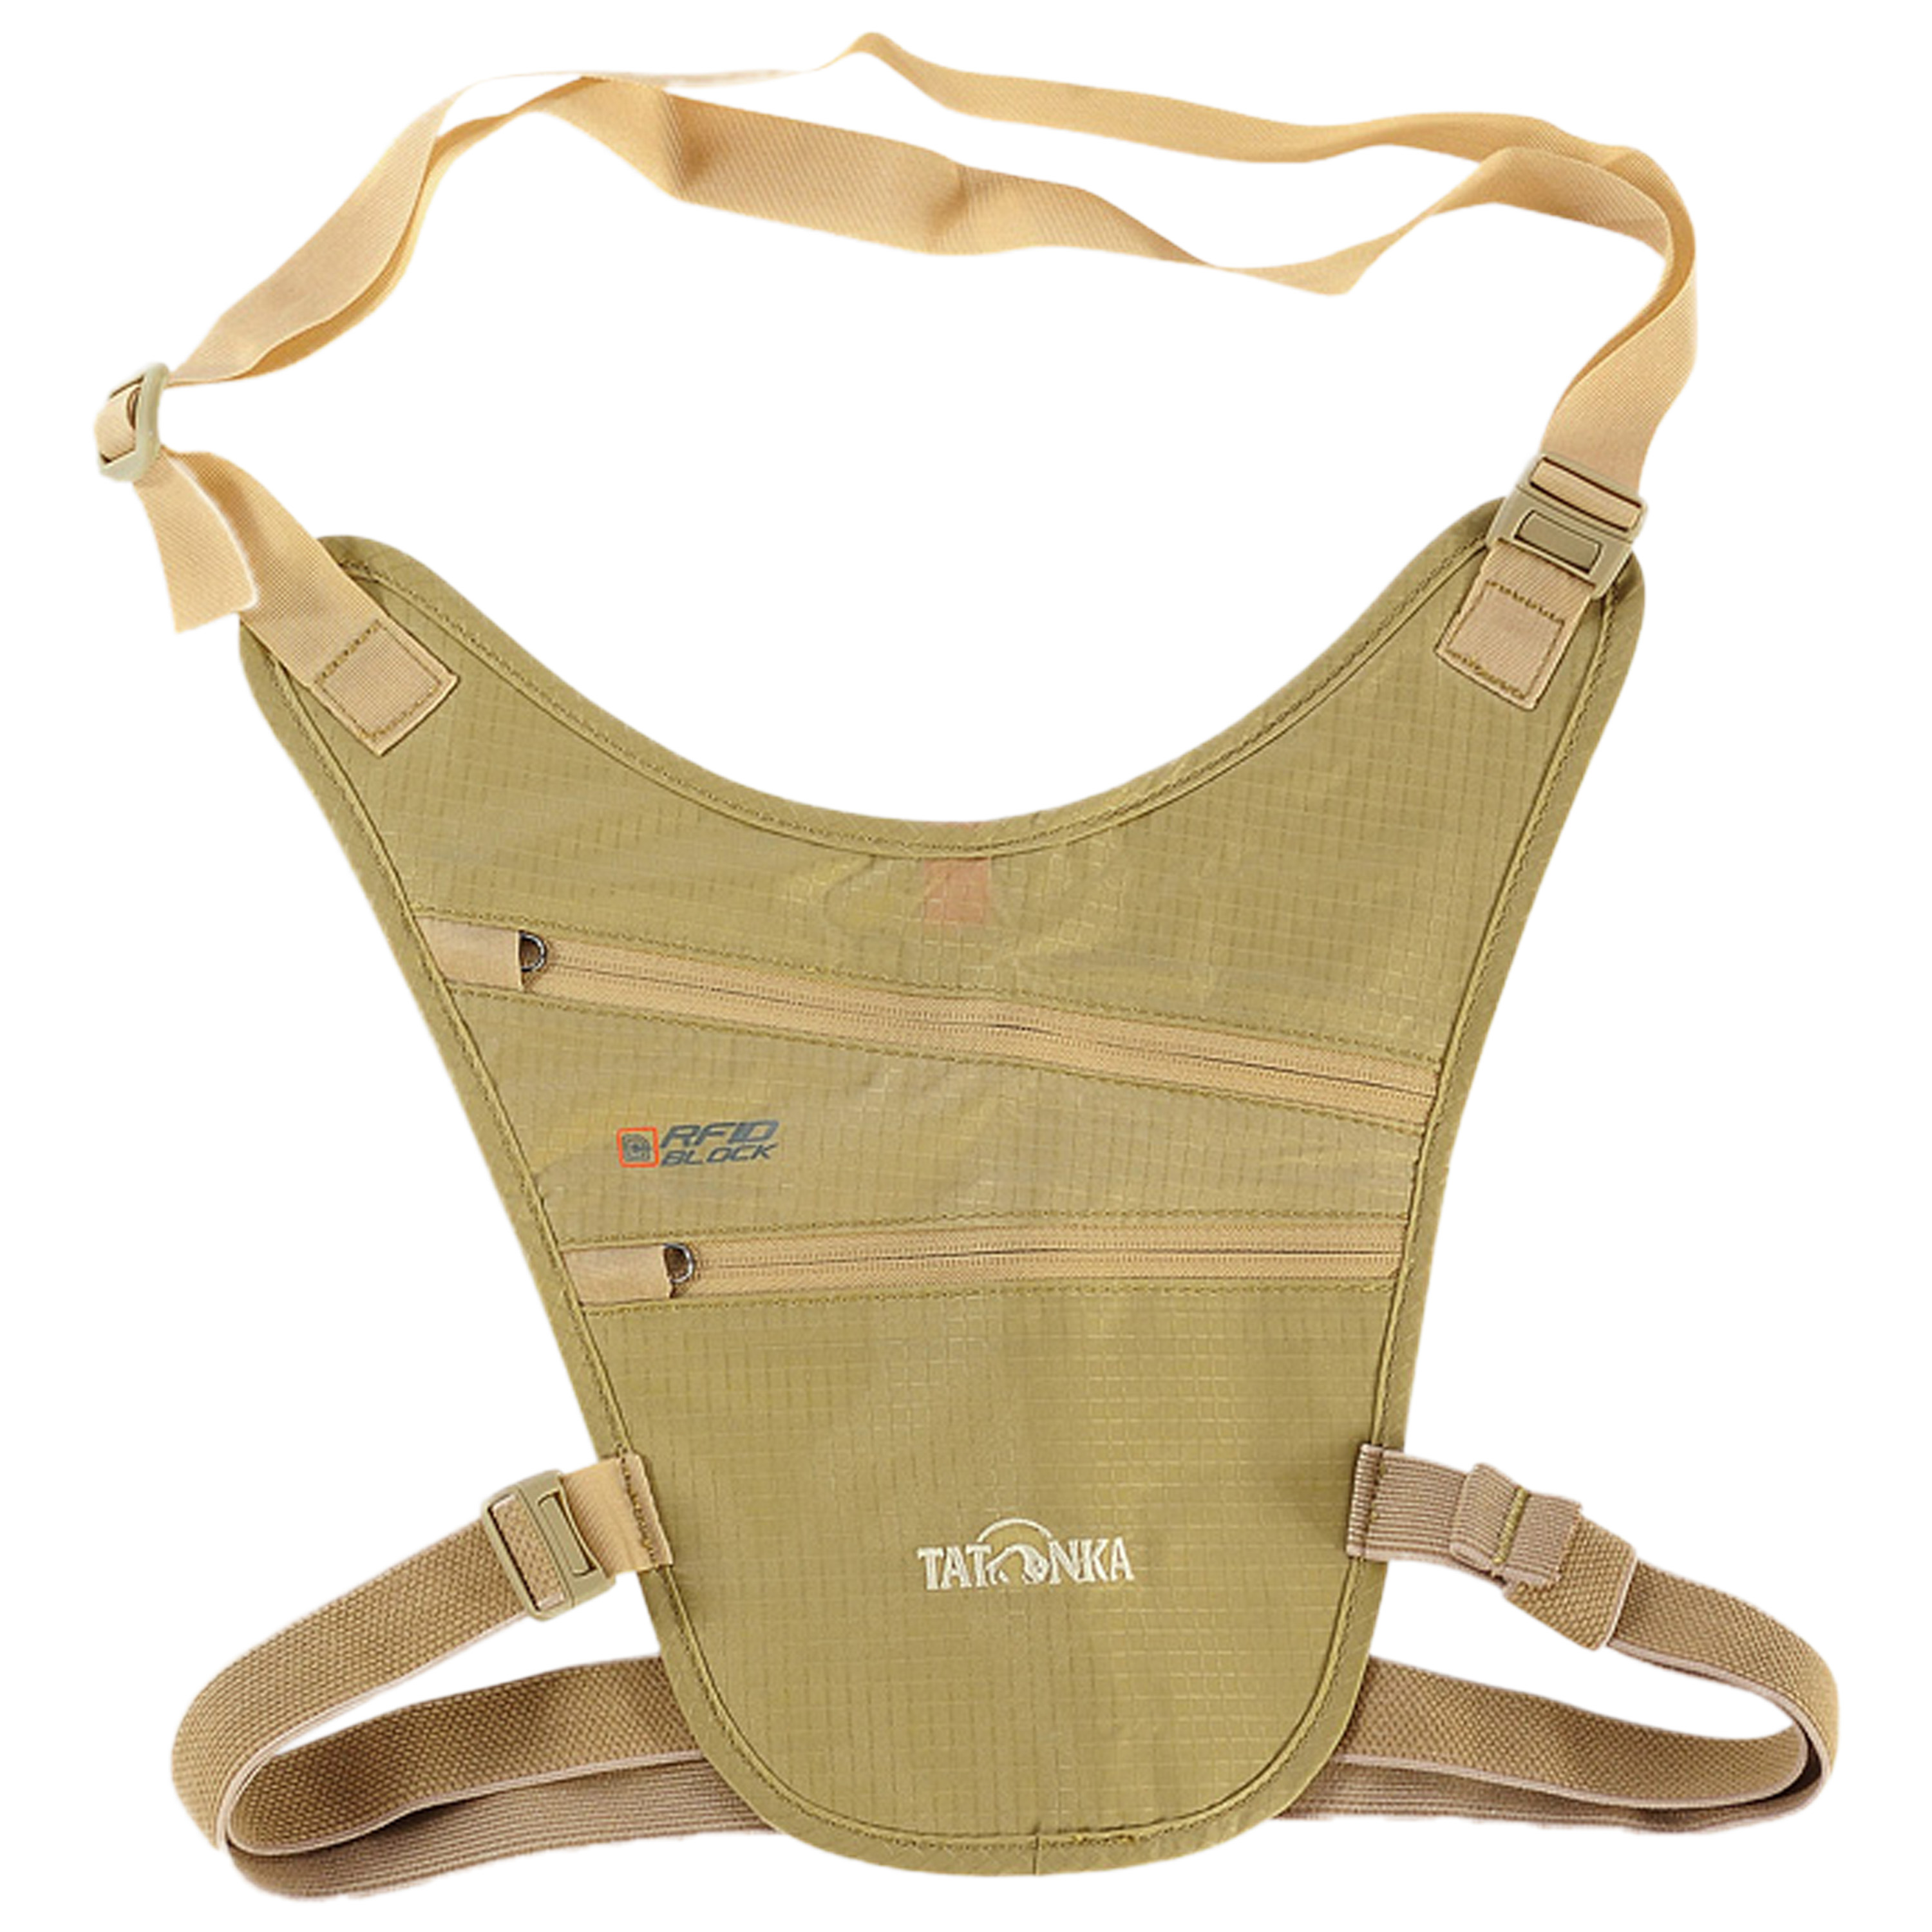 Tatonka Skin Chest Holster RFID B tan